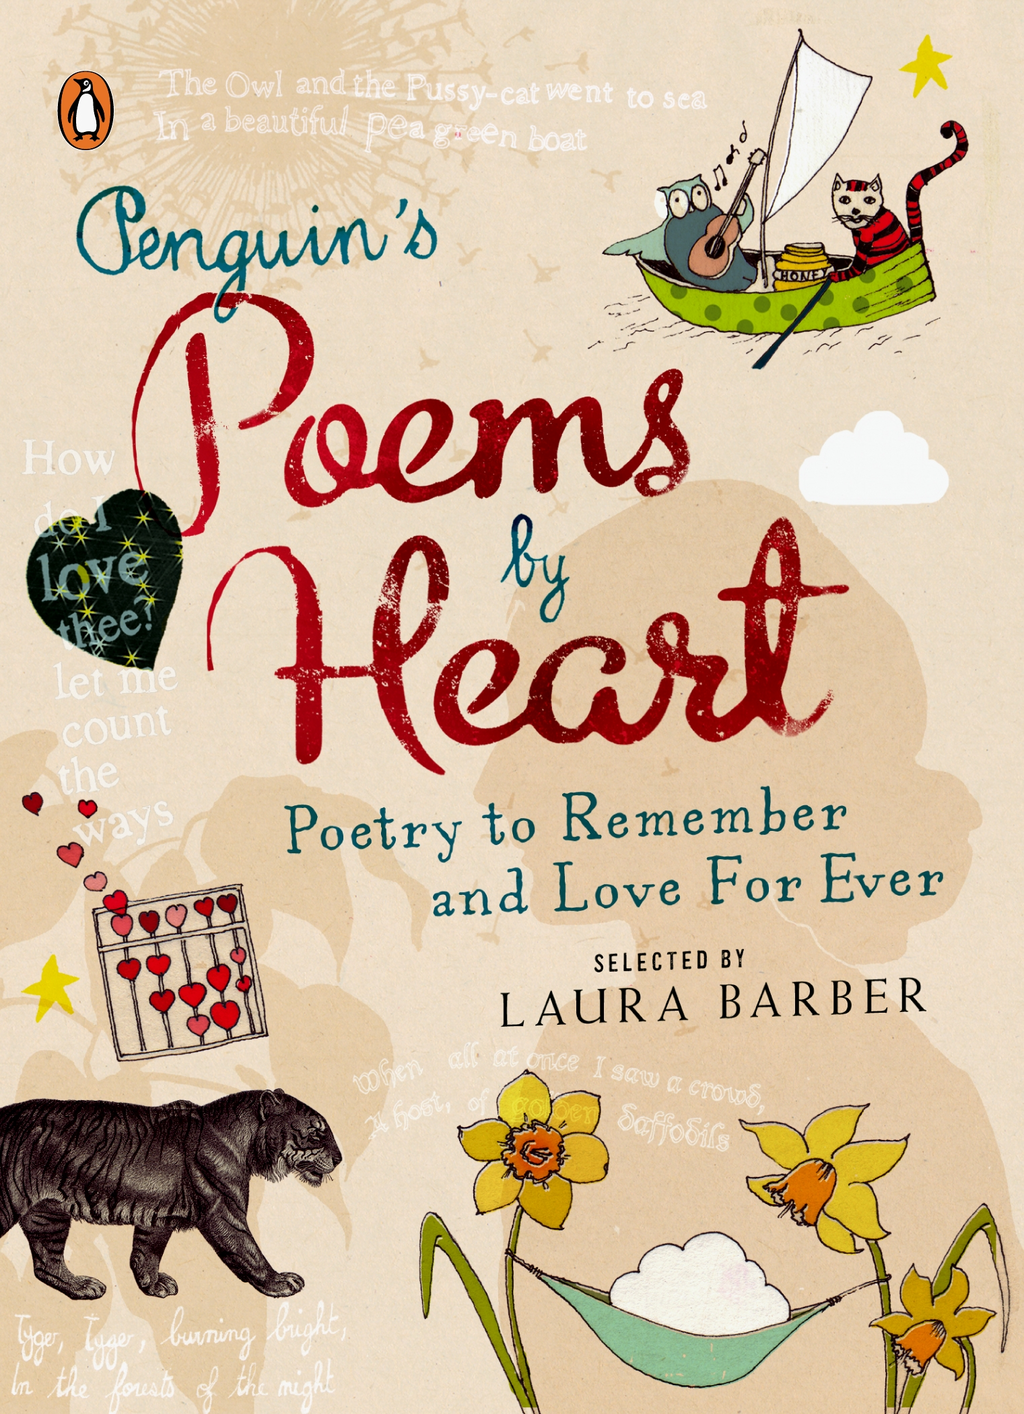 Penguin's Poems by Heart